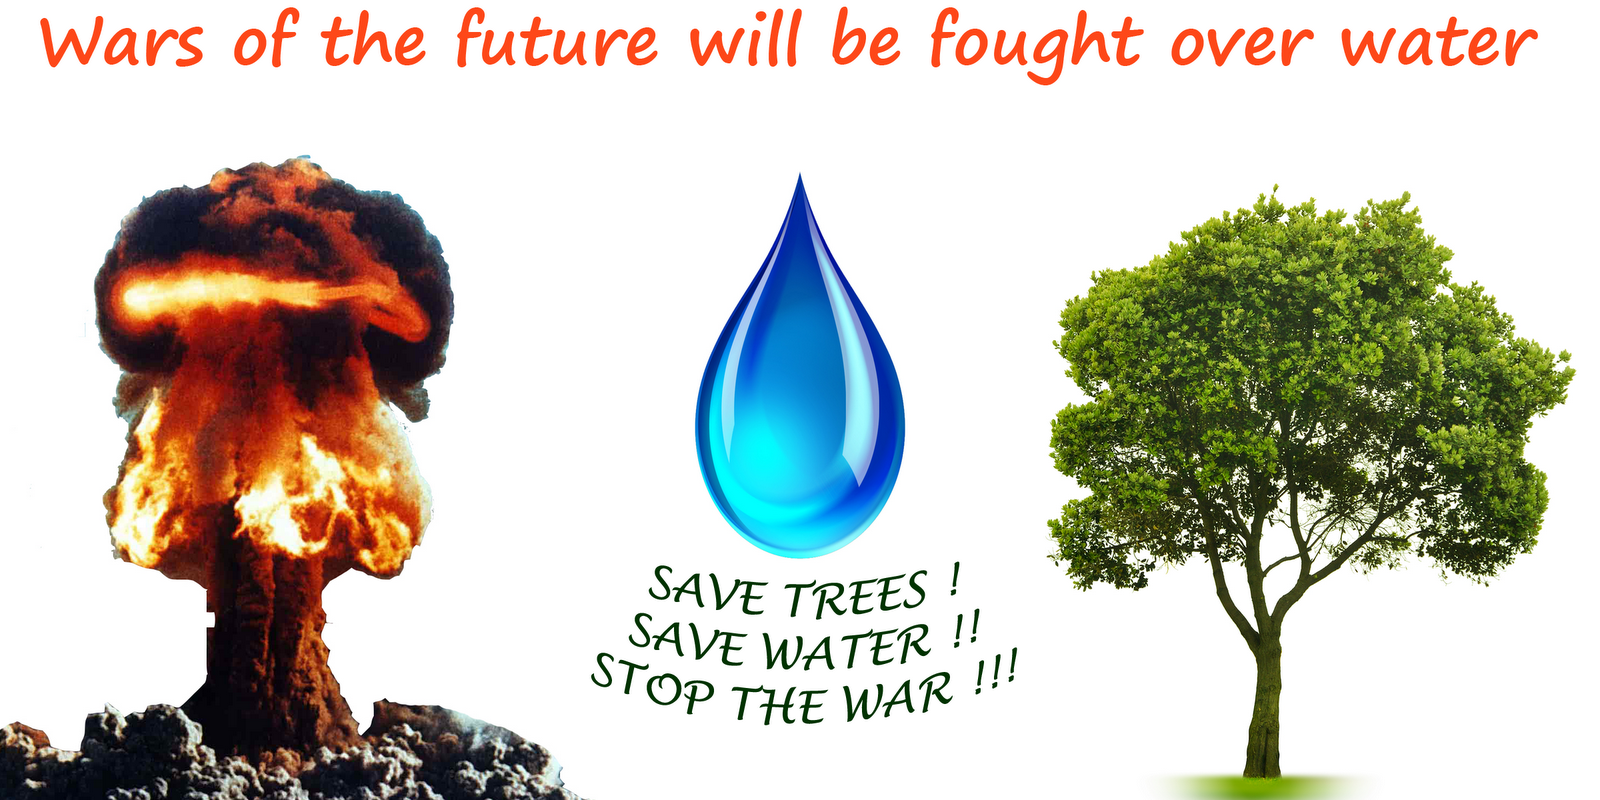 save water save life essay social awareness save water save life water in life essaysave earth life essay in hindi essay topics save earth life essay in